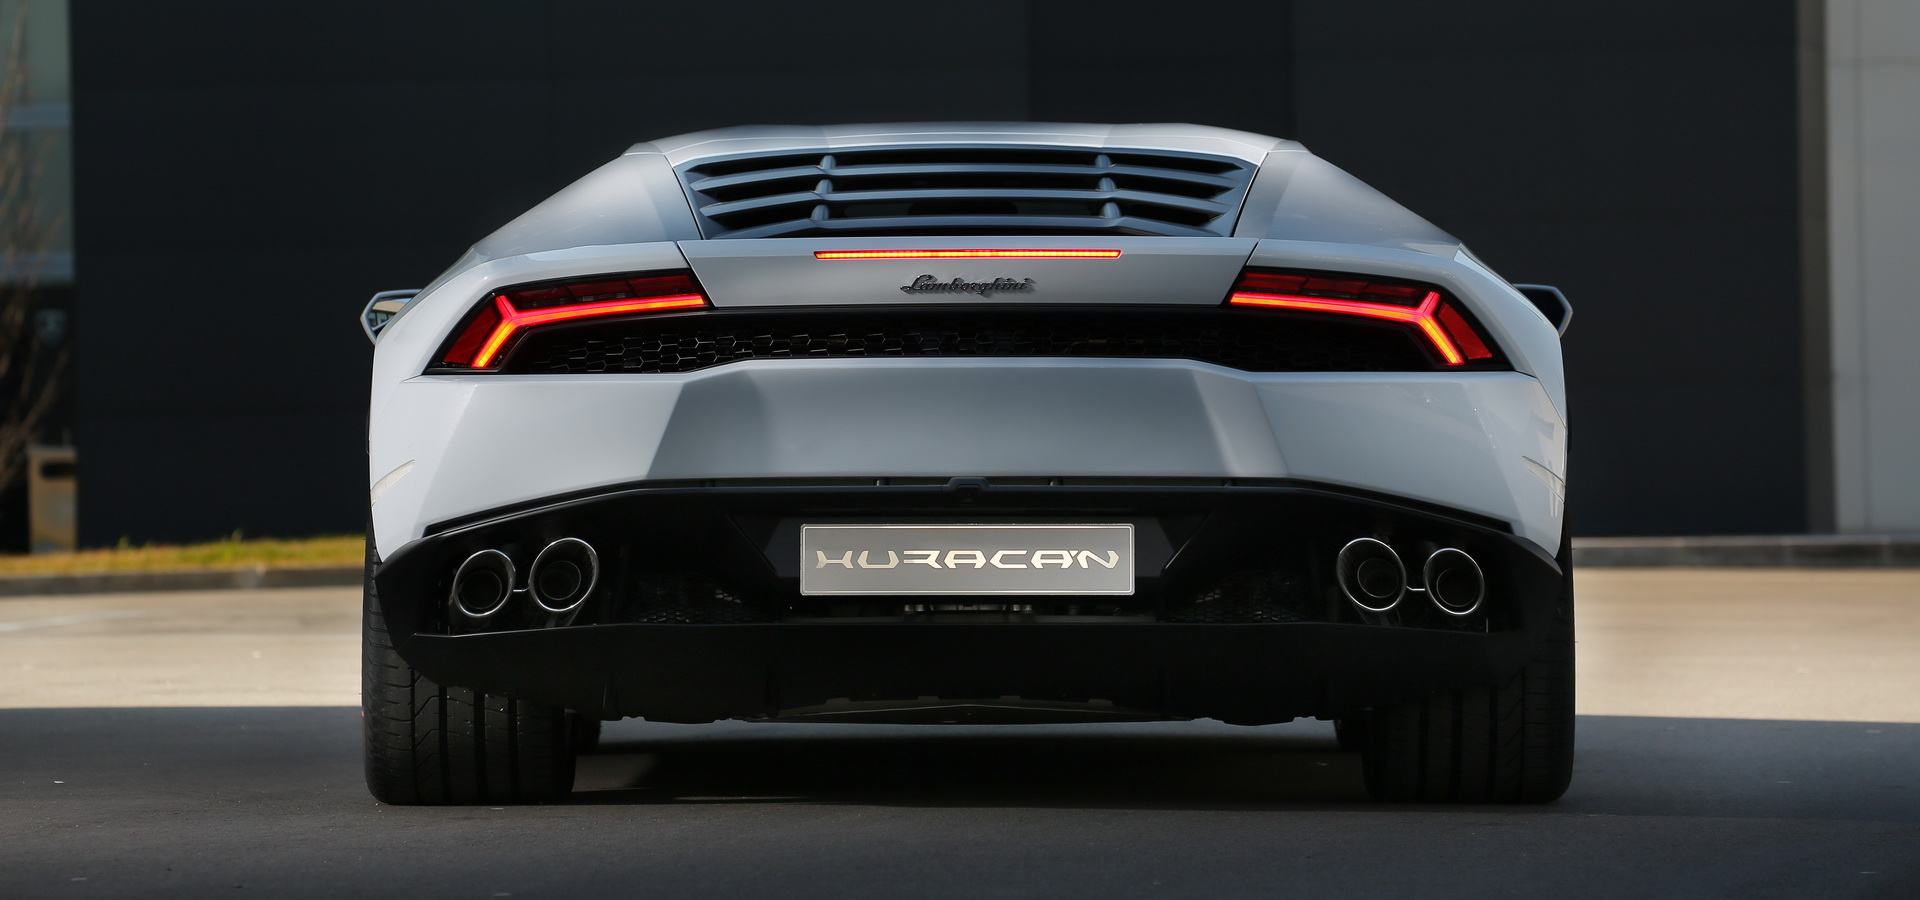 Let S See How Lambo S 2020 Huracan Evo Stacks Against The Old Lp 610